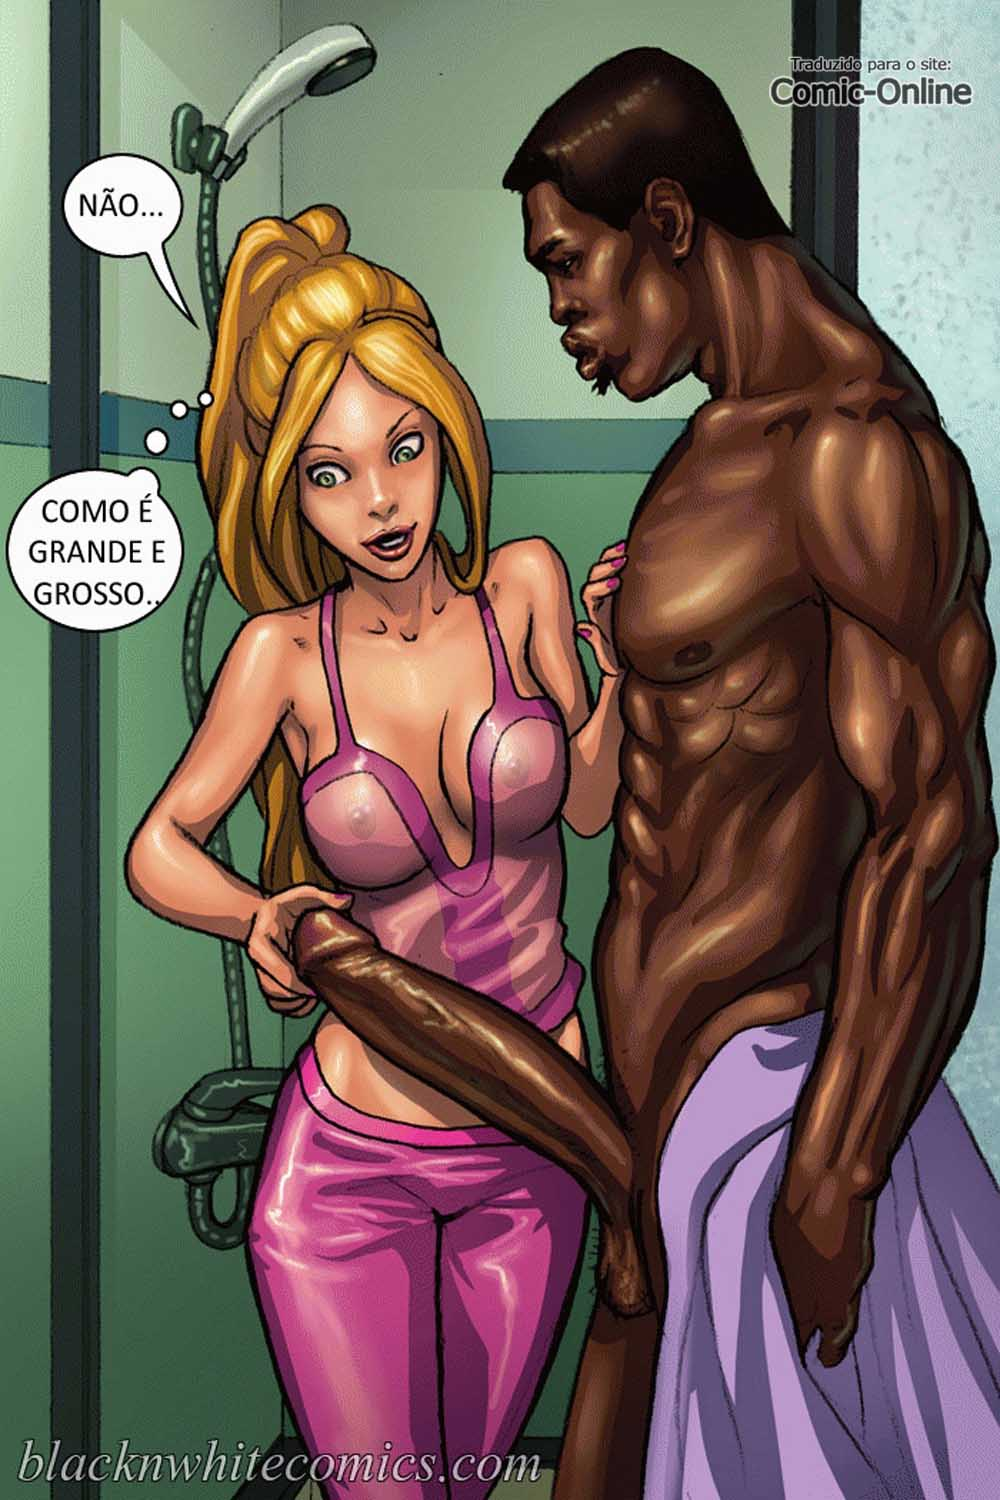 from Wade naked black men having sex animated